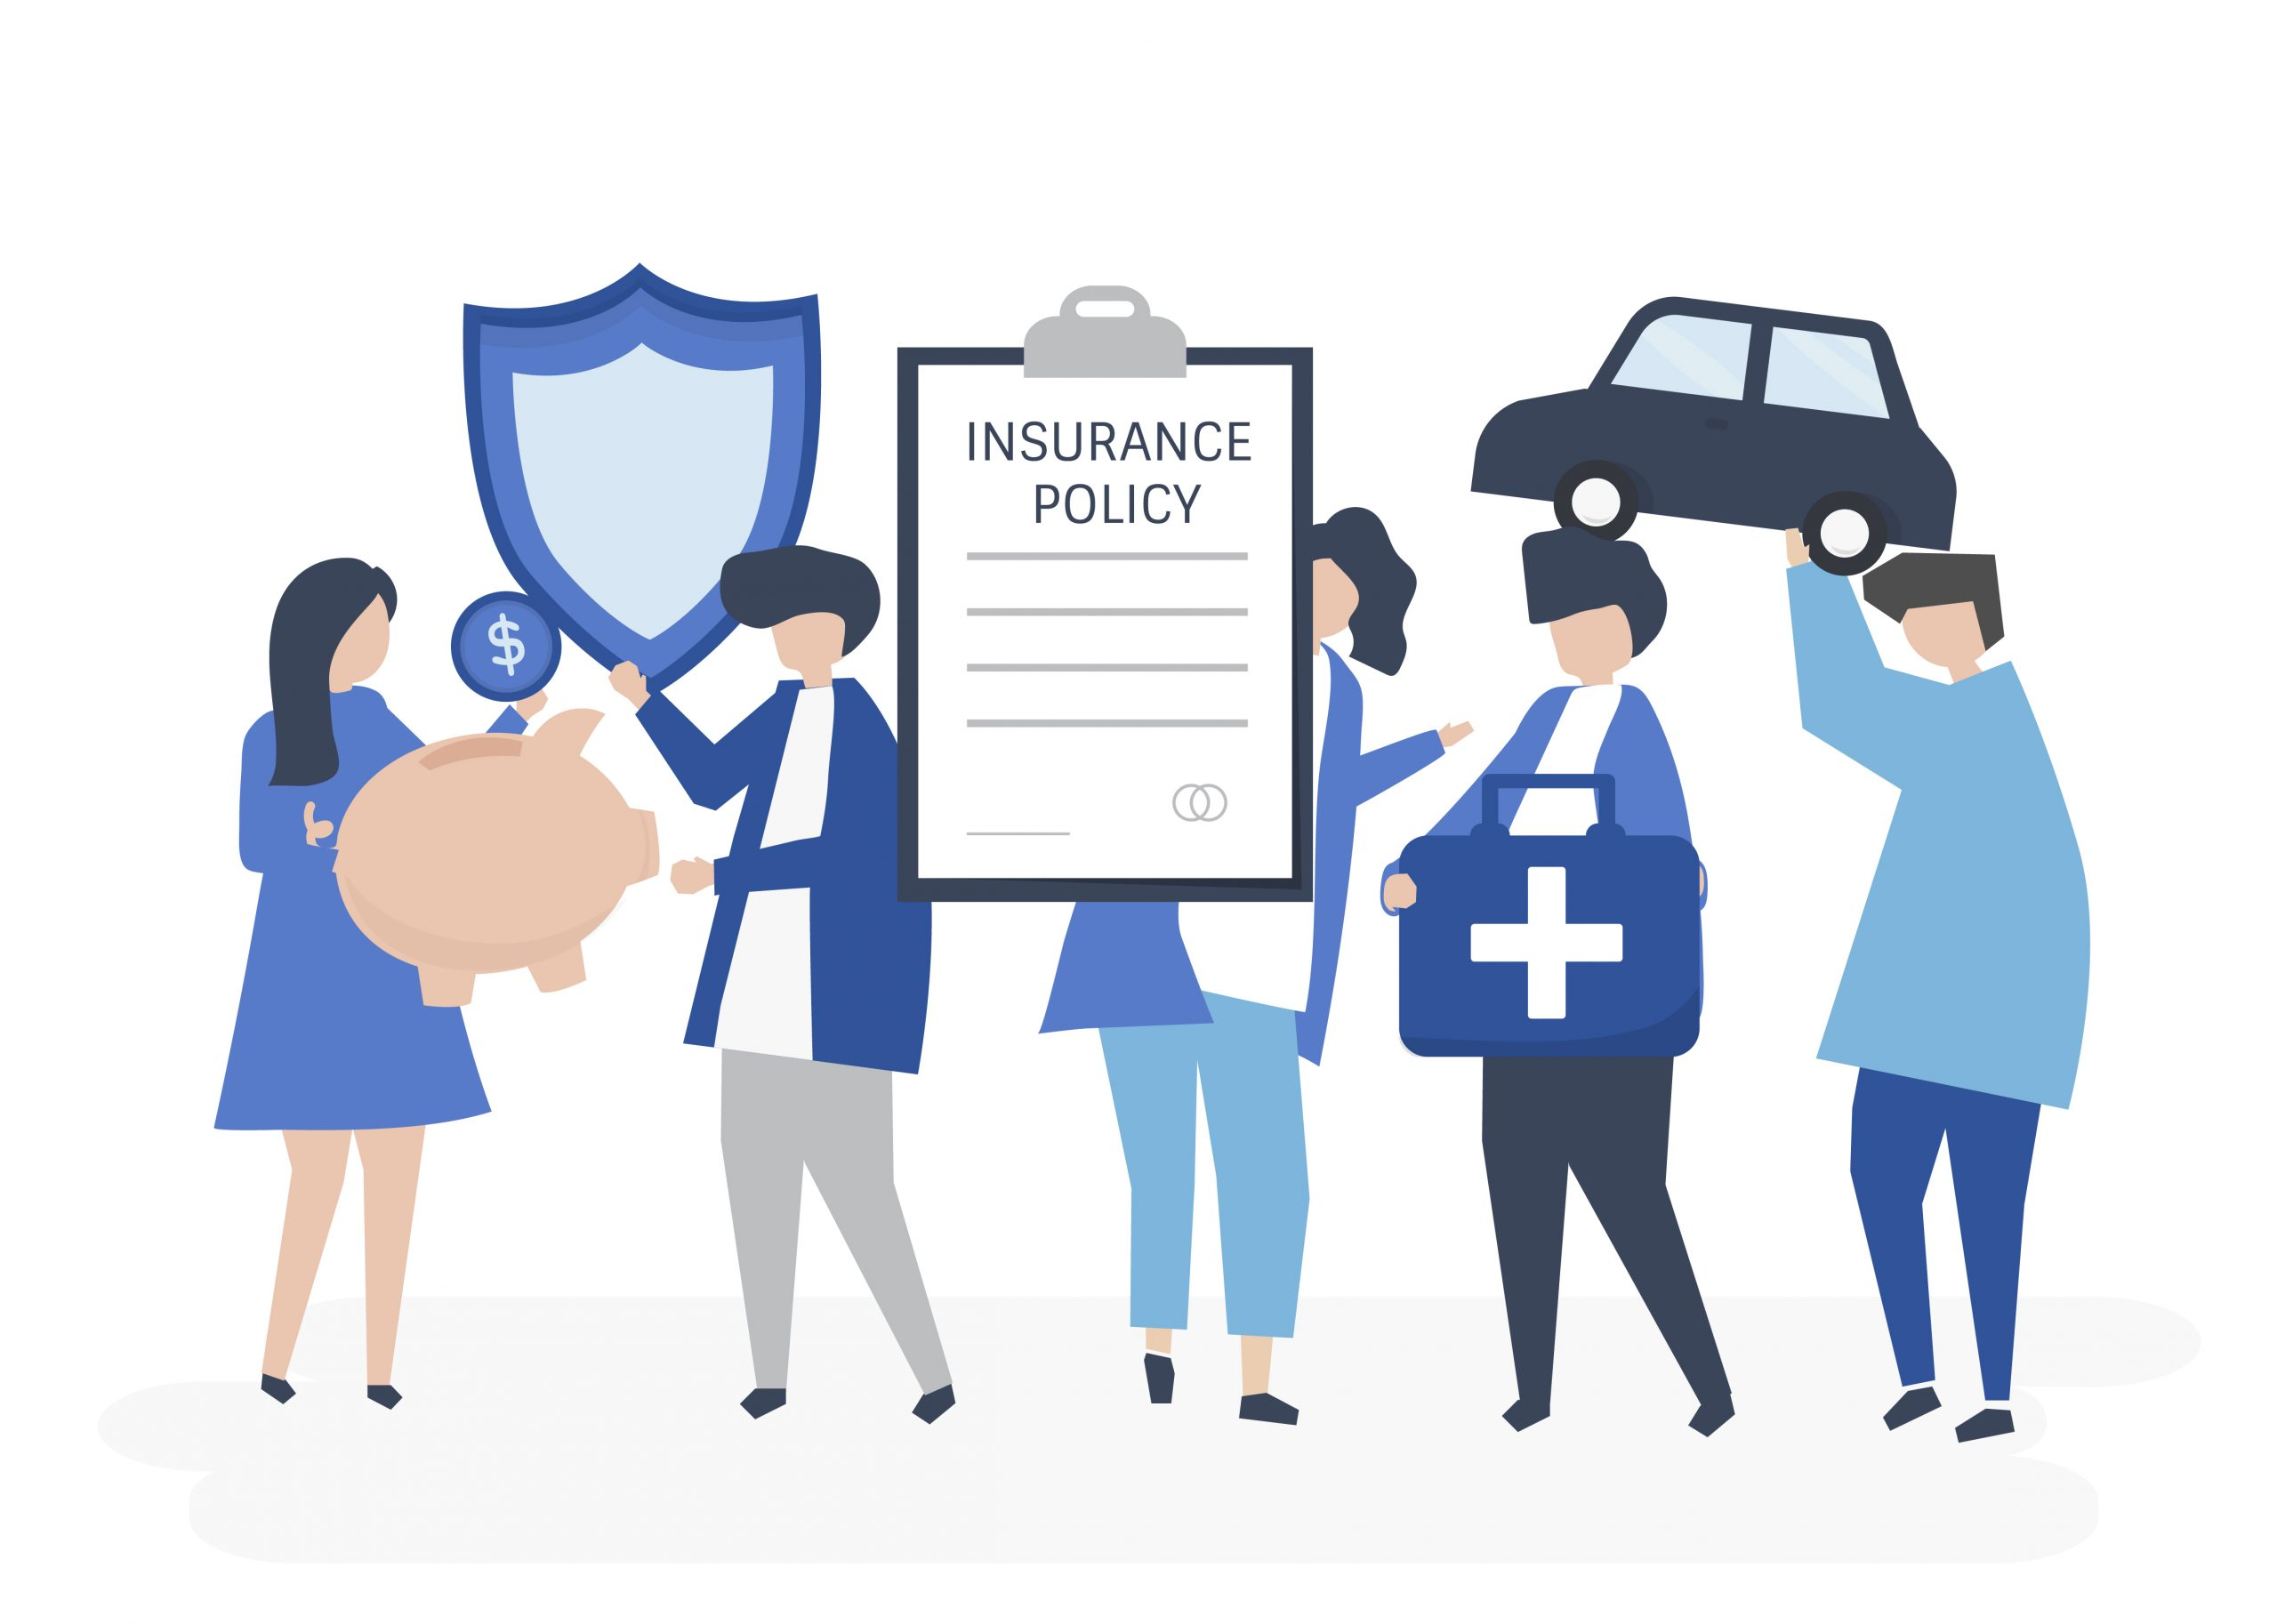 vector image of group of people - Group Insurance Policy